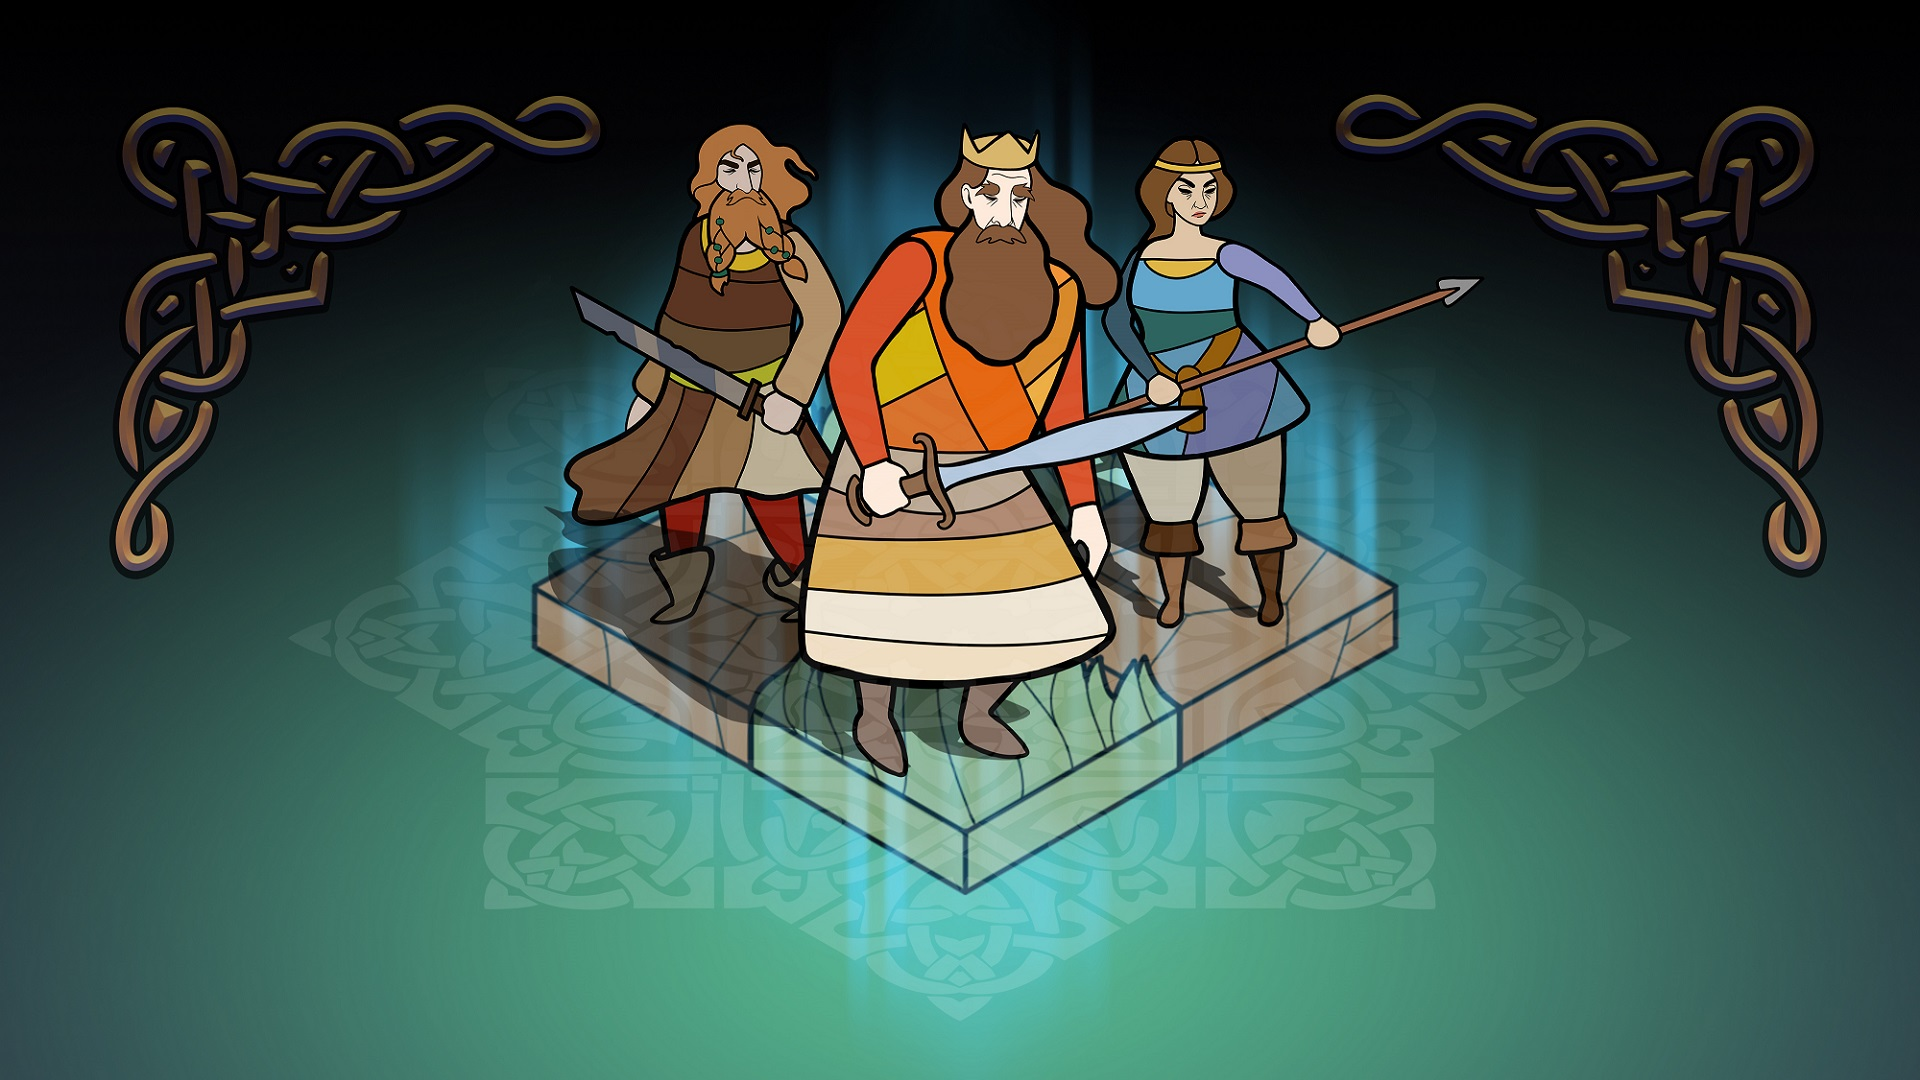 Pendragon review – Tactical tales of Arthurian legend